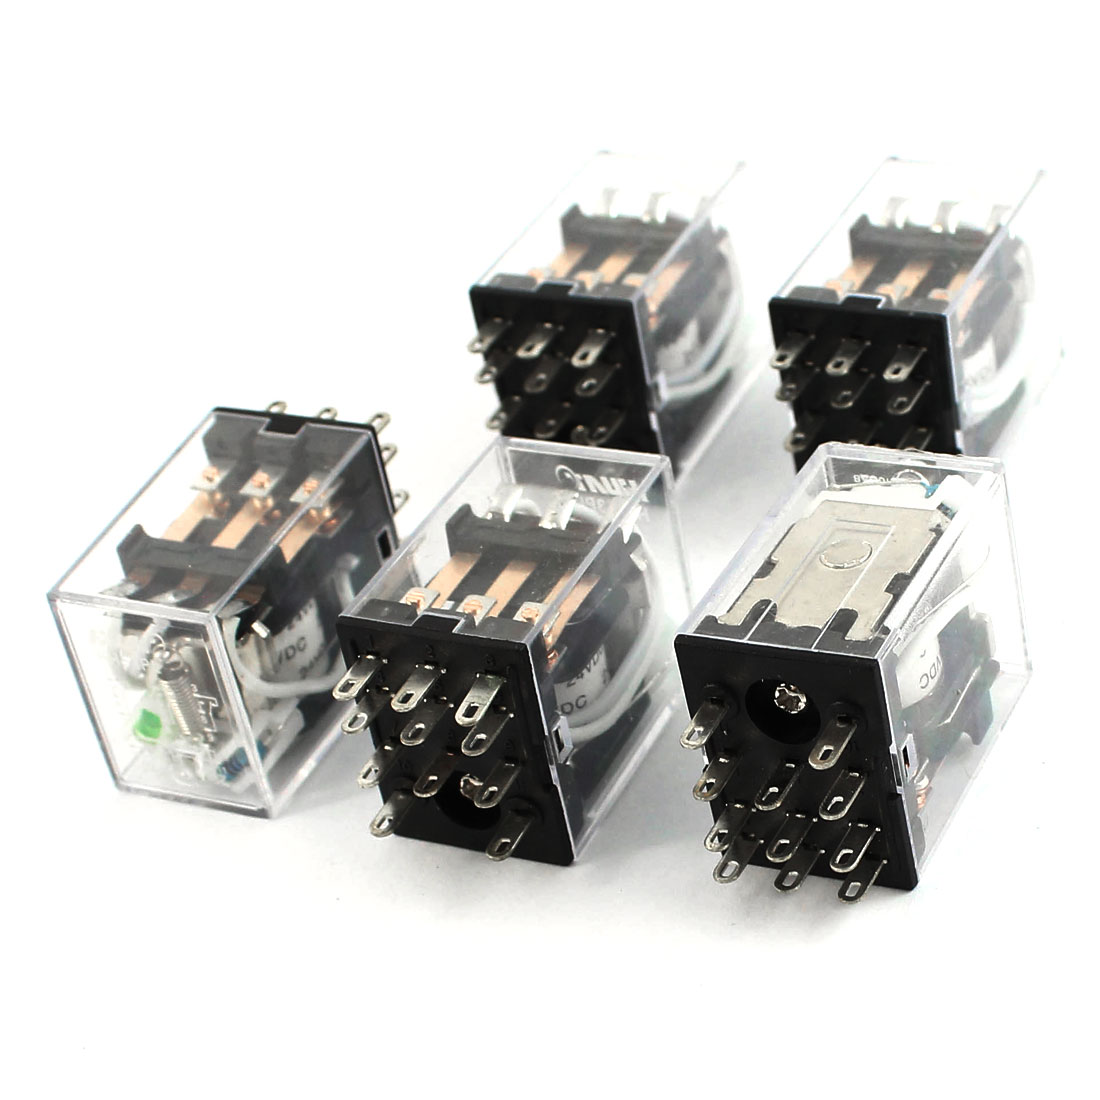 5pcs HH53PL DC 24V Coil 3PDT Green LED Lamp Light General Purpose Power Relay